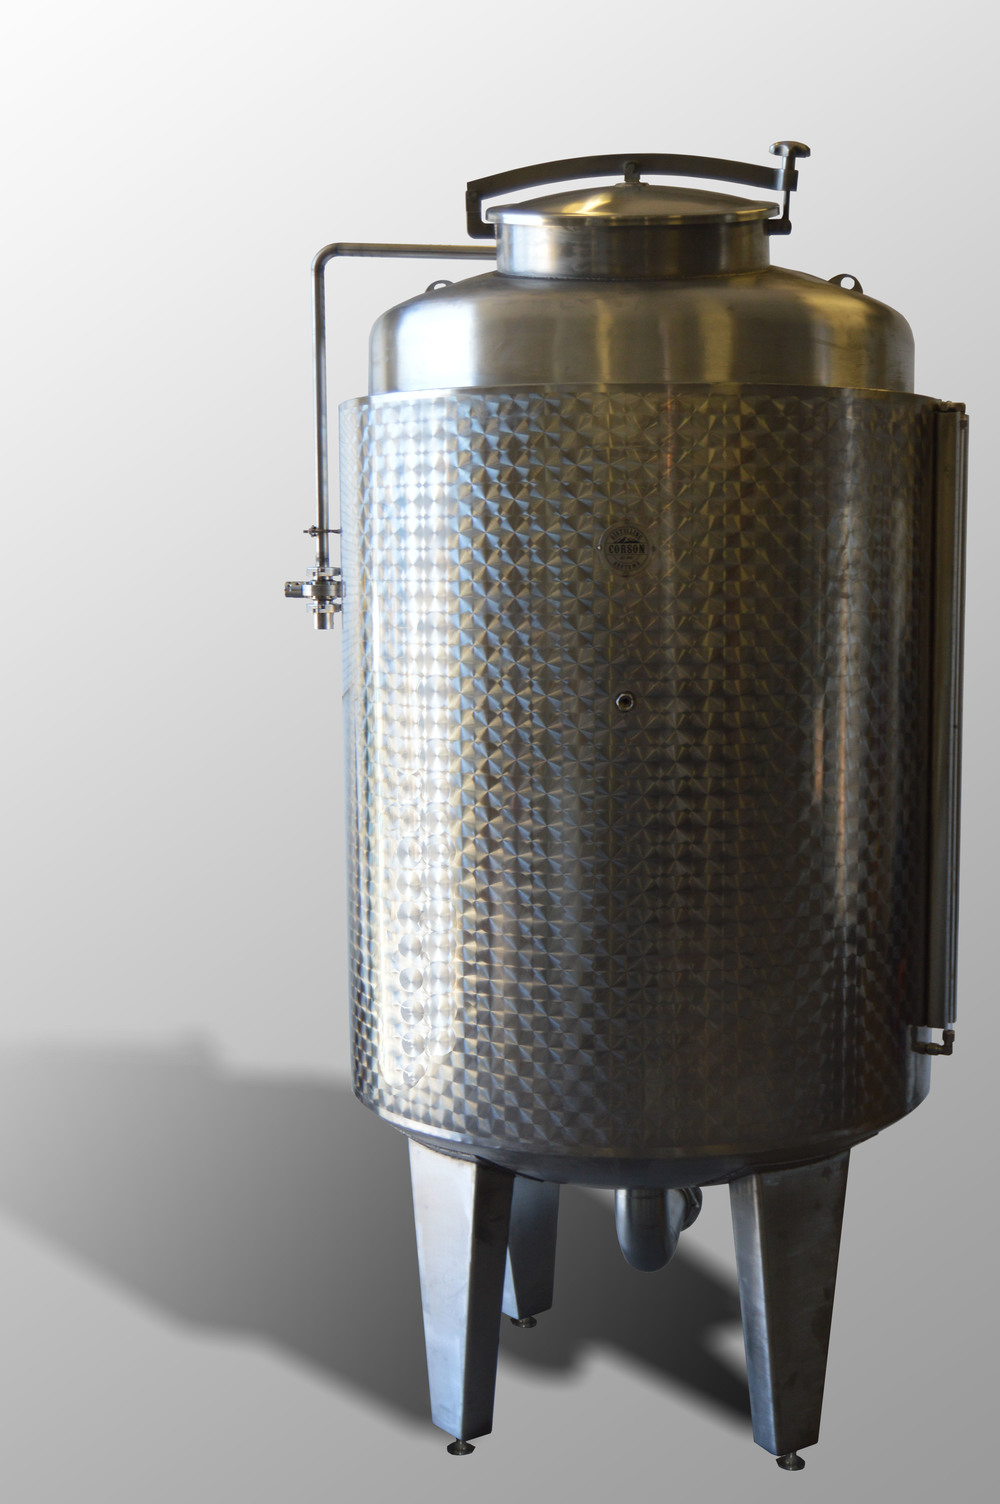 Stainless distillery fermenter with dished bottom.